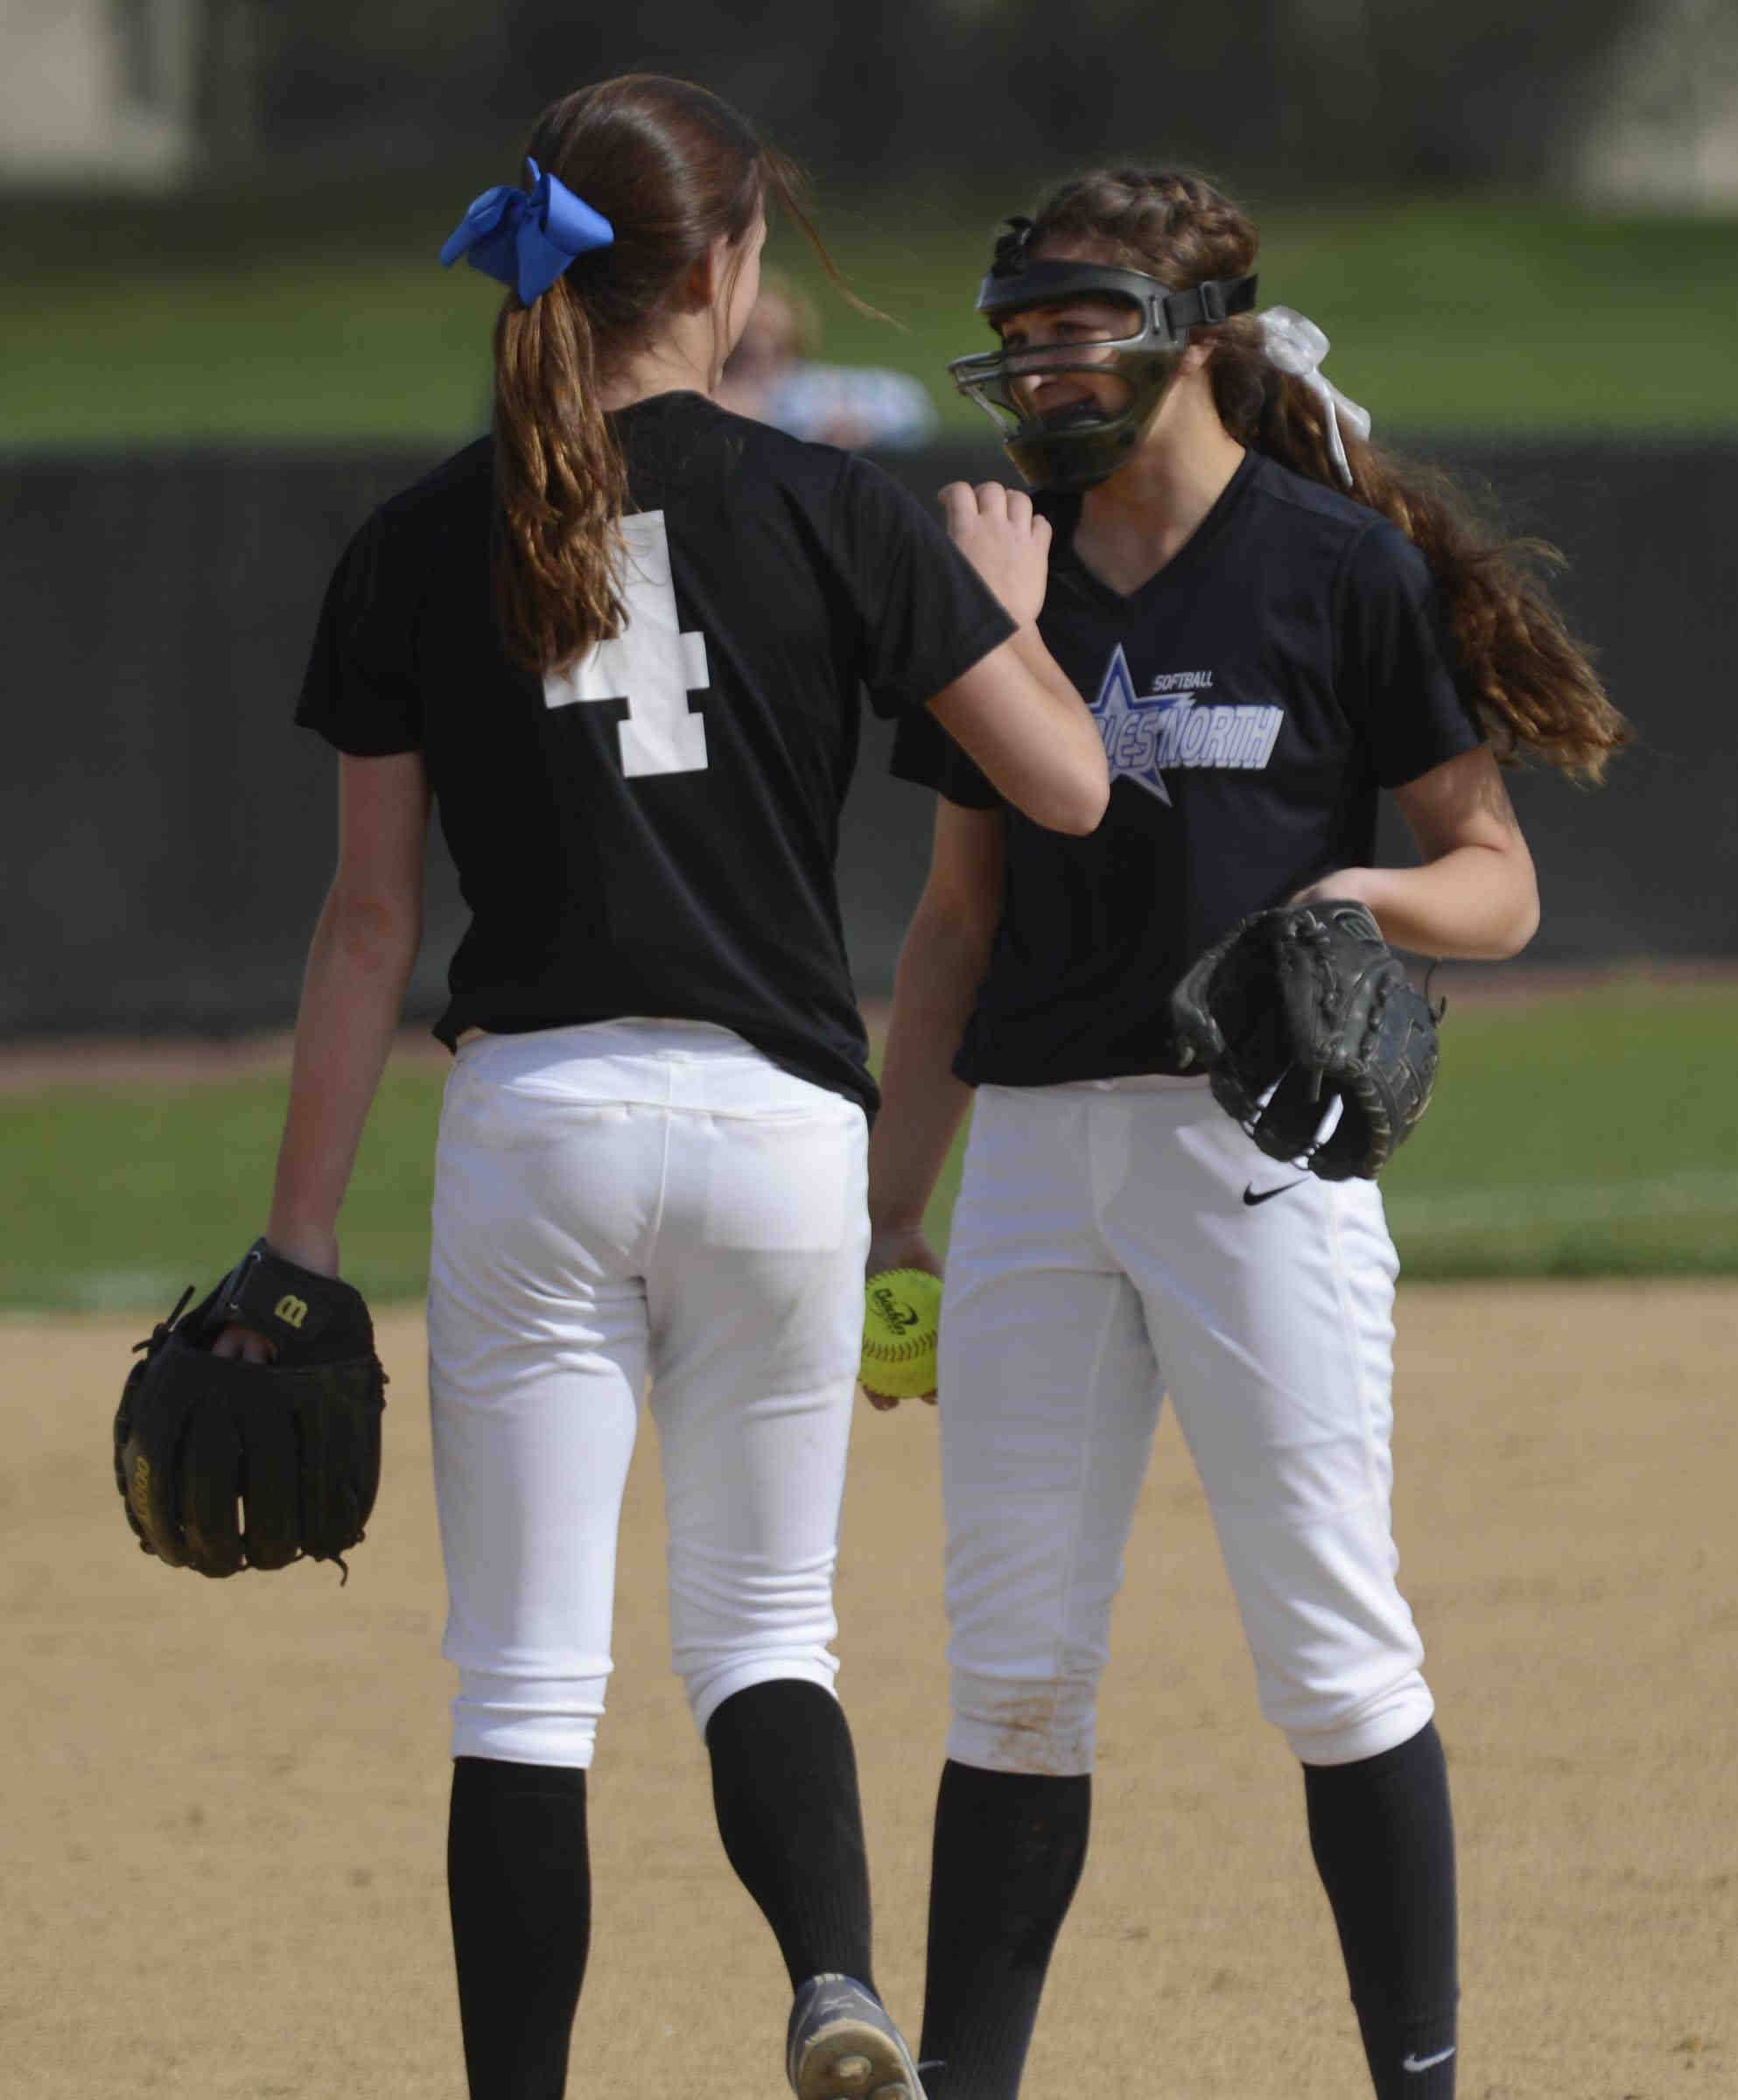 Center field is Sabrina Rabin's natural position, but she was the ace for St. Charles North the past three years. Here she is pictured with second baseman Kaitlyn Waslawski.